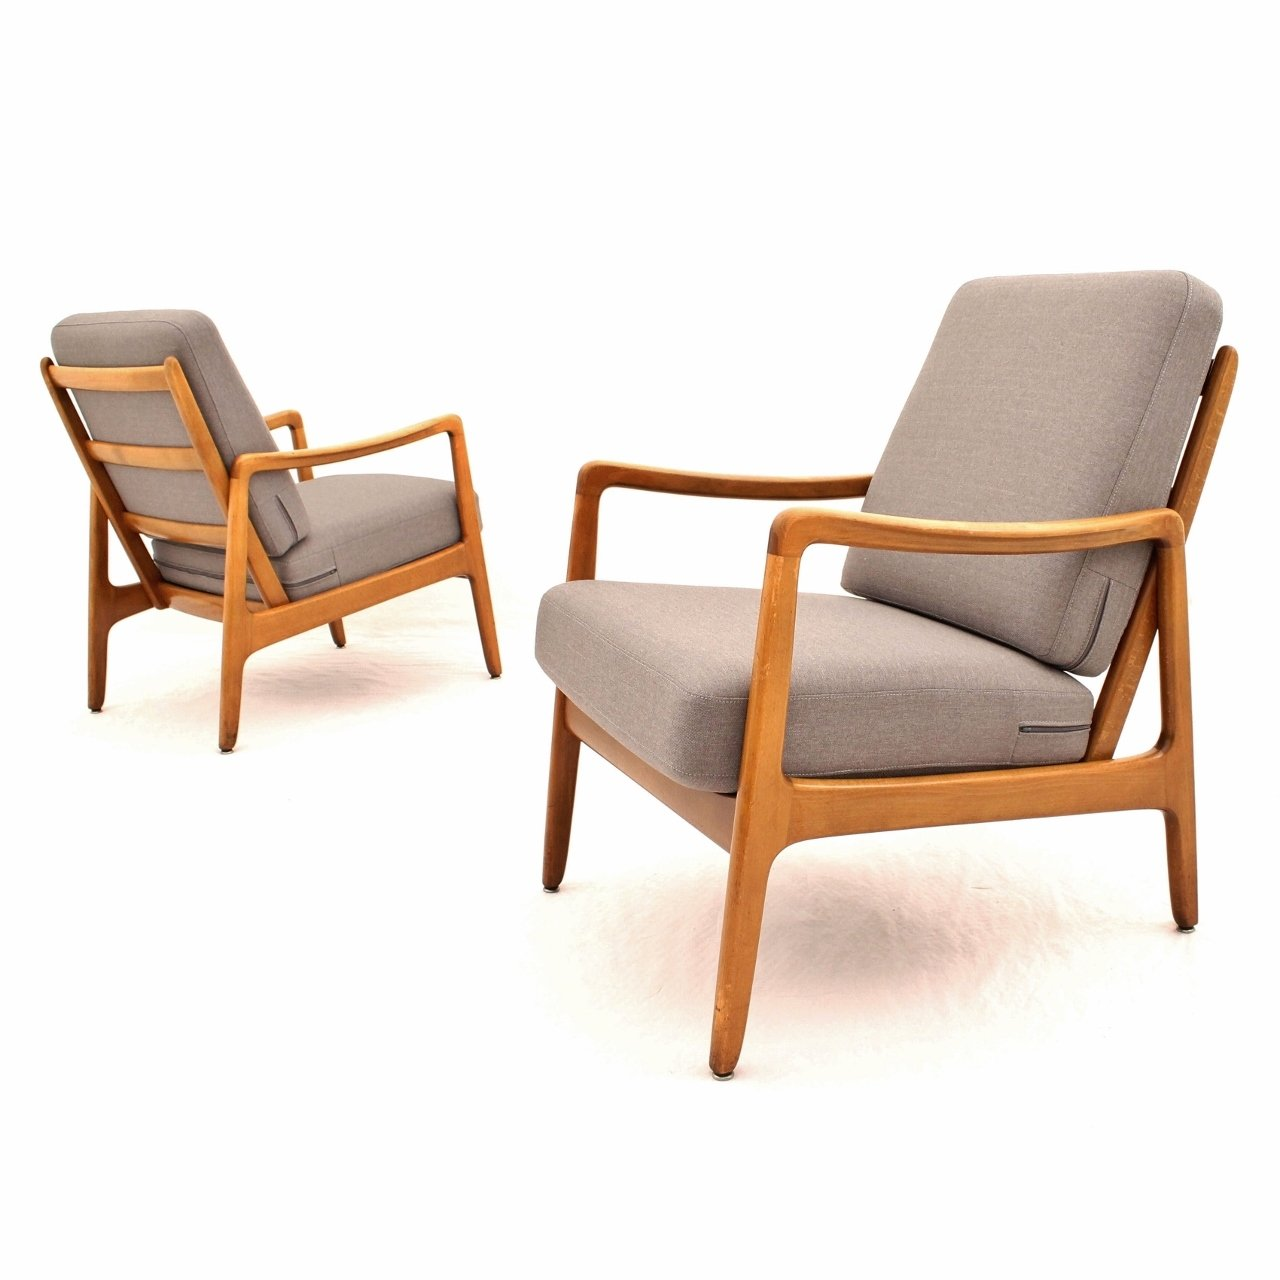 danish design fd109 beech lounge chairs in silver grey fabric by ole